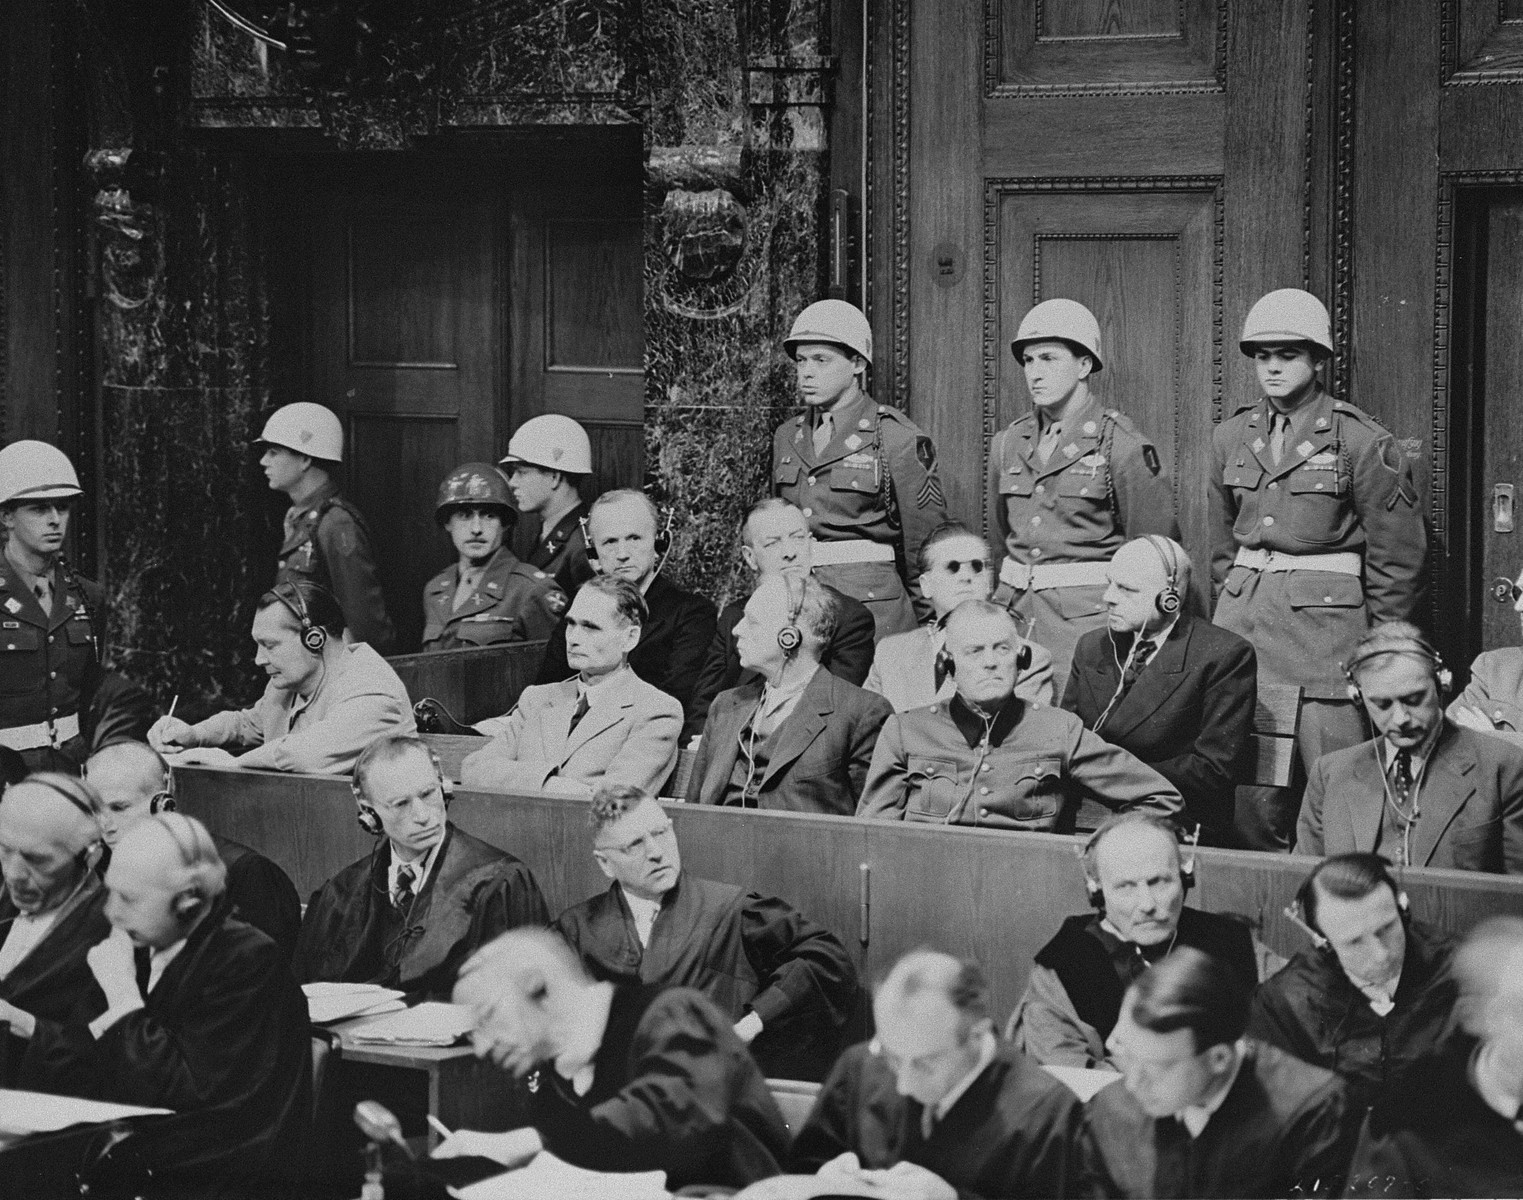 The defendants listen as the prosecution begins introducing documents at the International Military Tribunal for war criminals at Nuremberg.